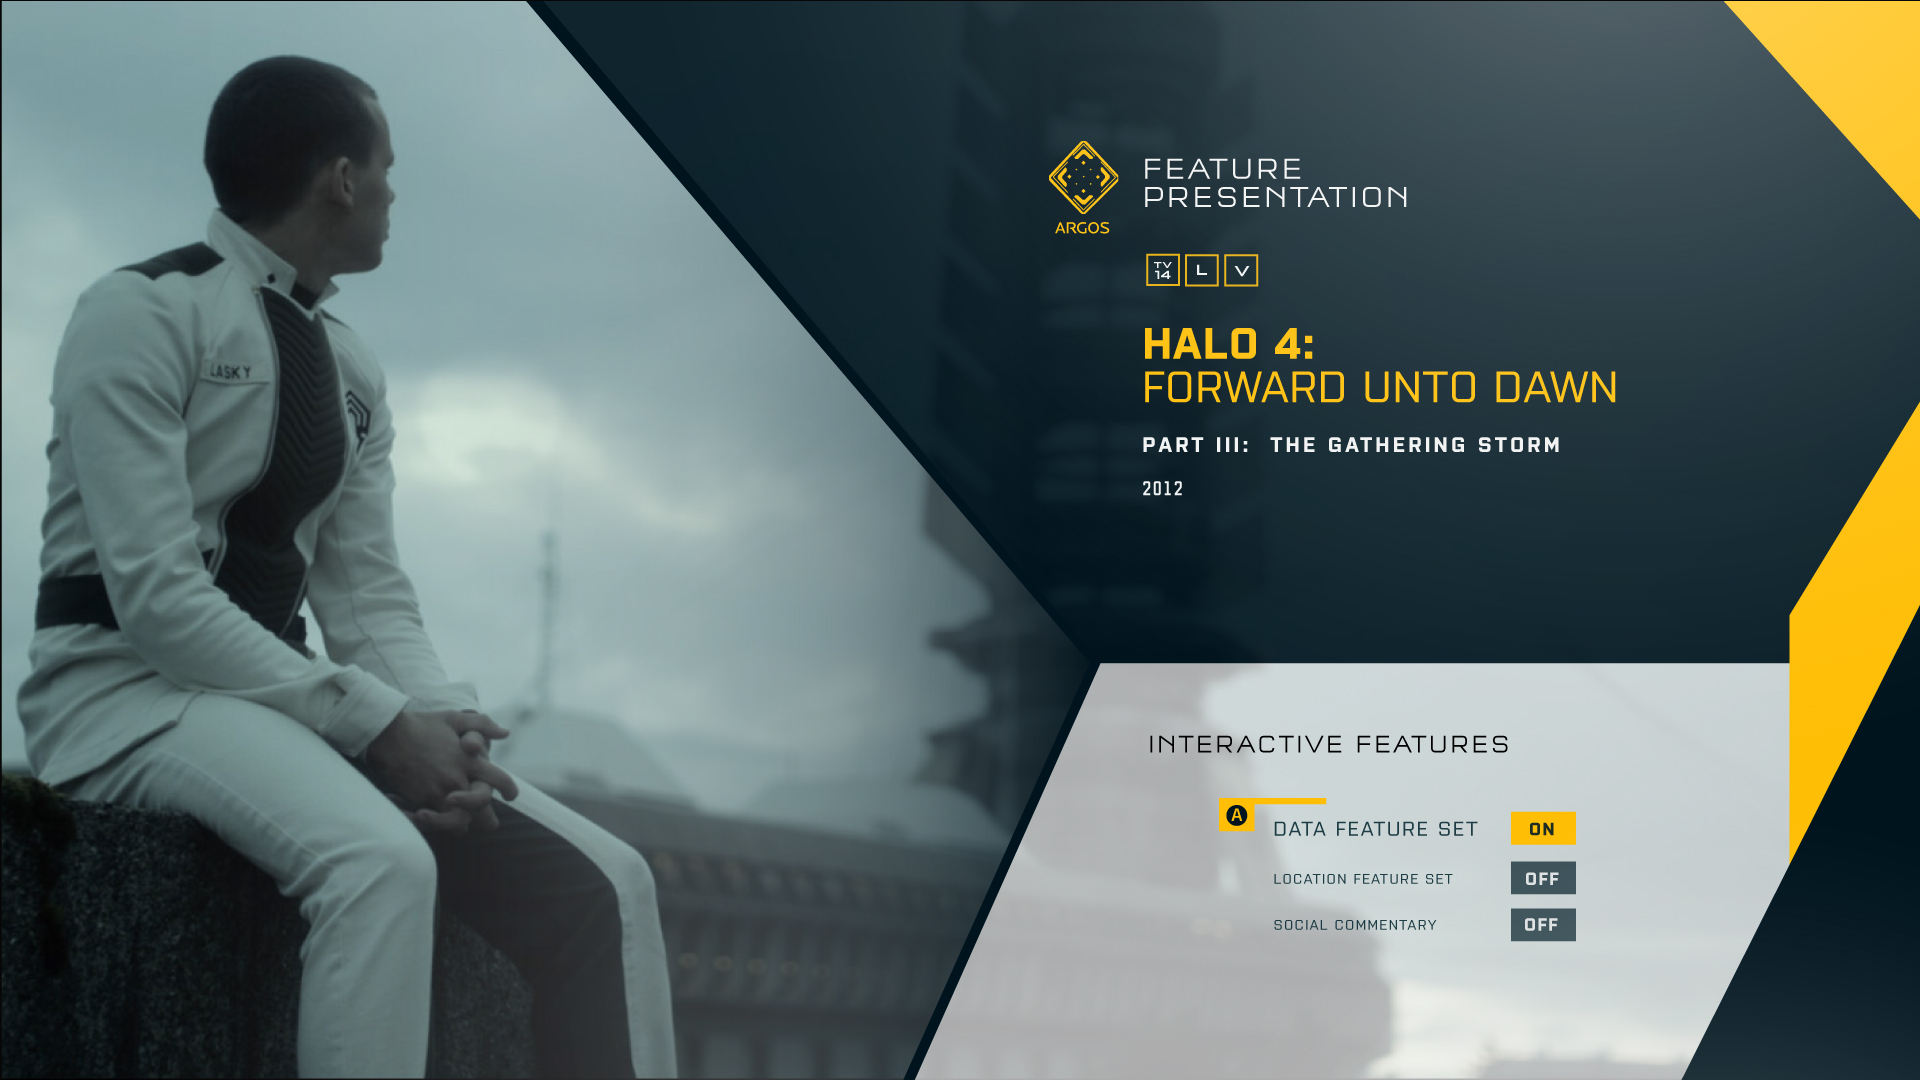 Early version of the  FEATURE PRESENTATION  screen.